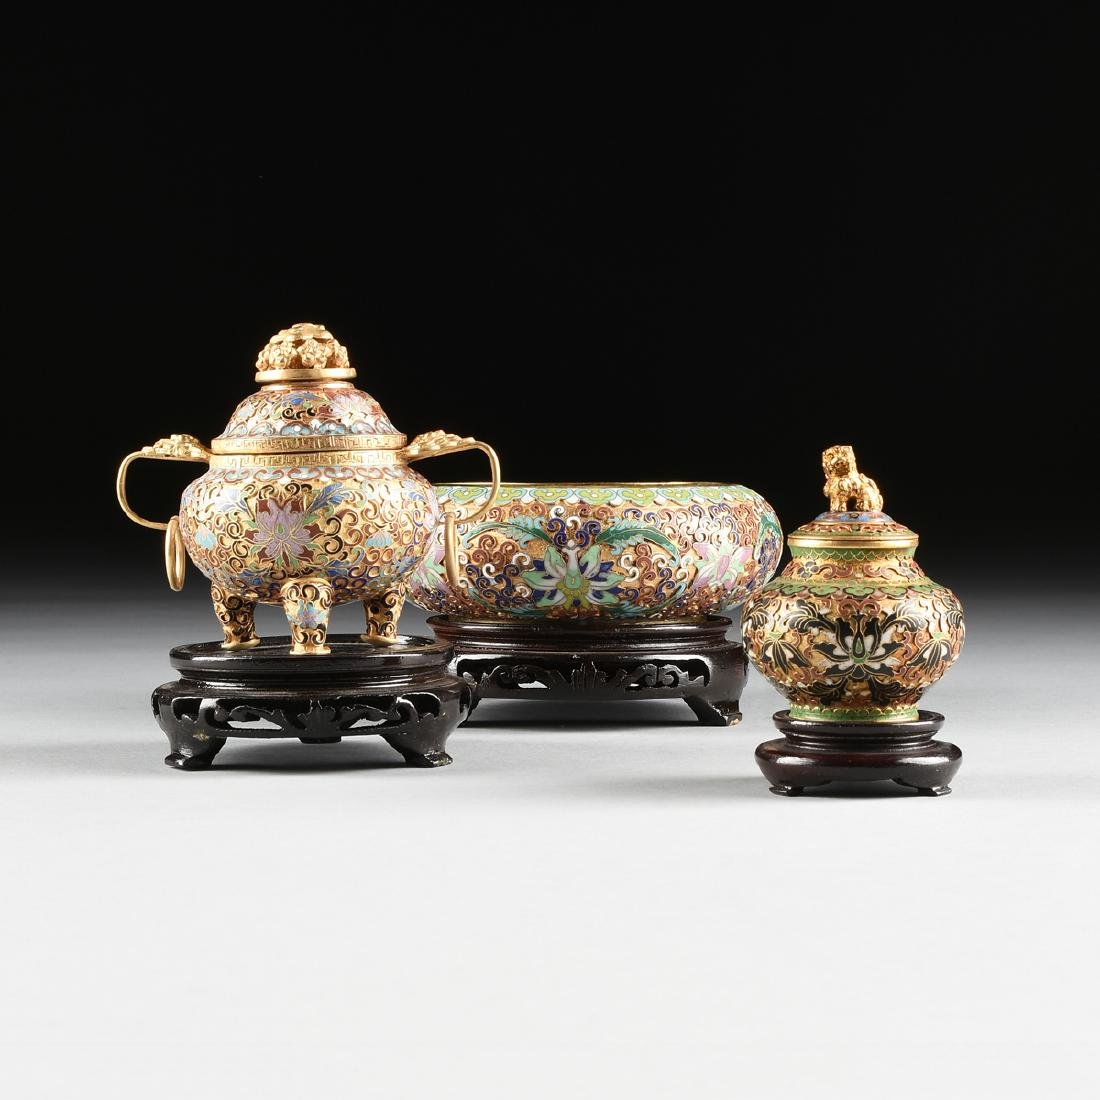 A GROUP OF THREE CHINESE CLOISONNÉ DECORATED GILT